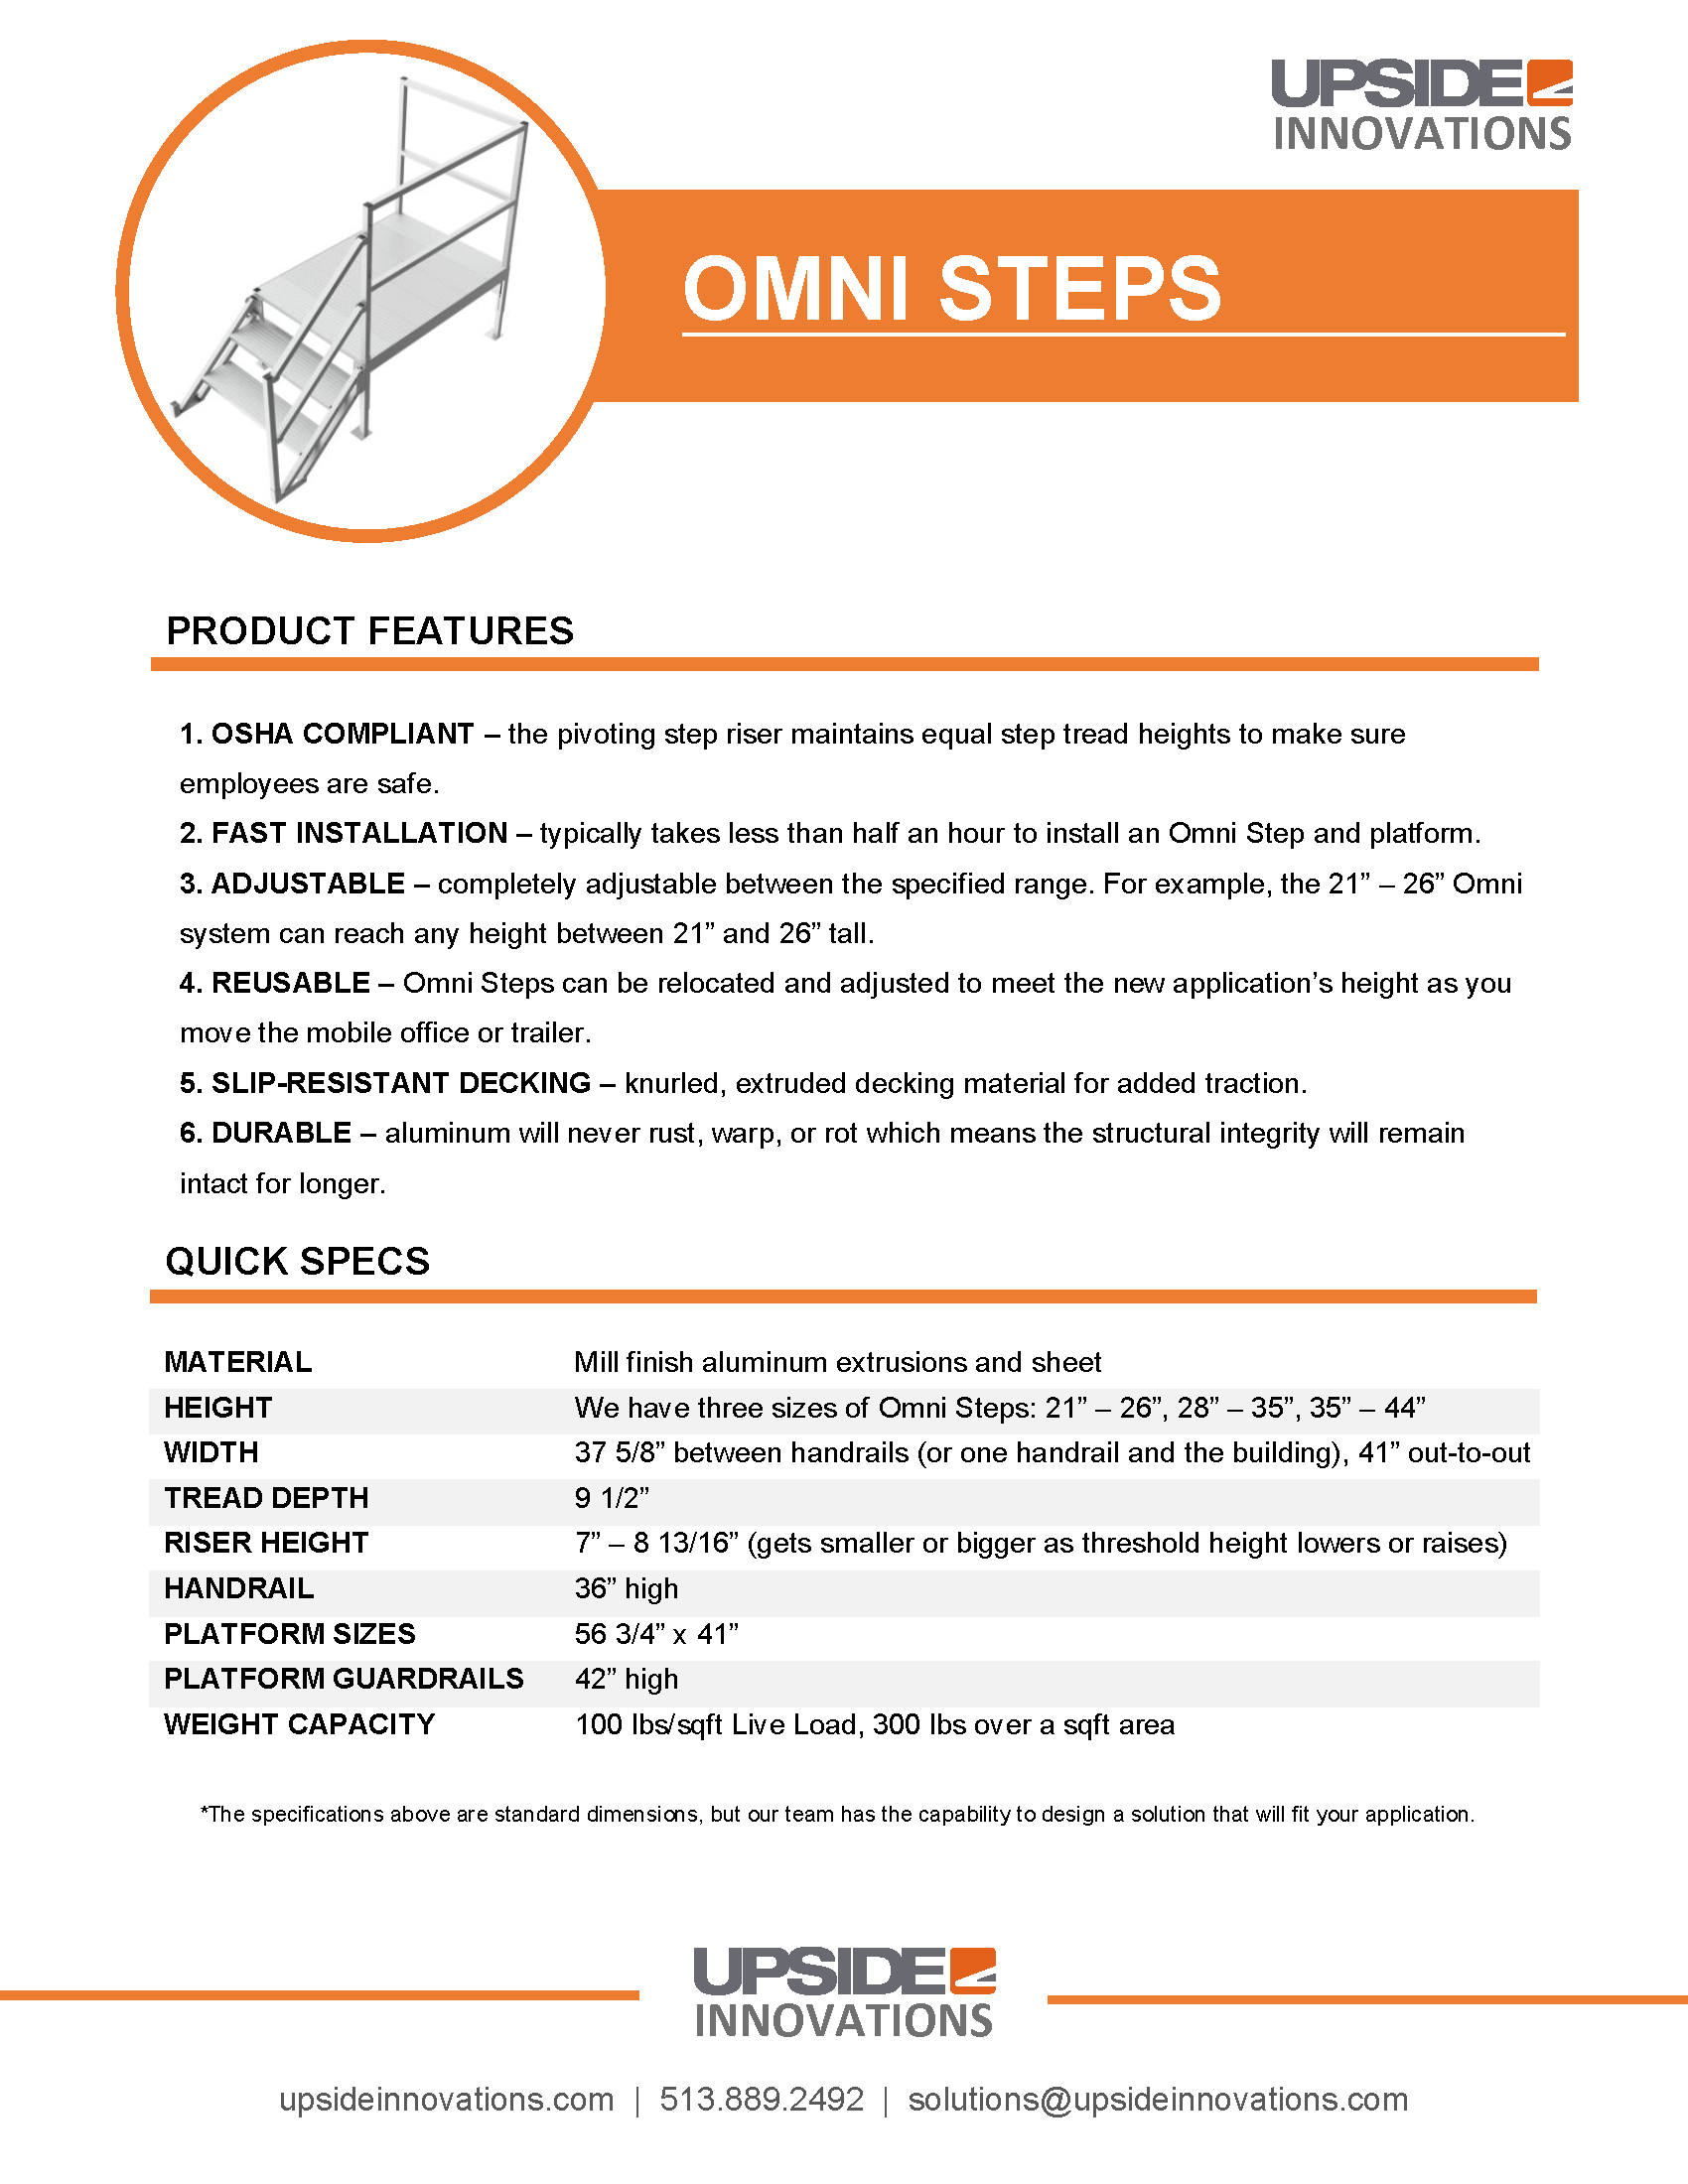 omni-stairs-specifications